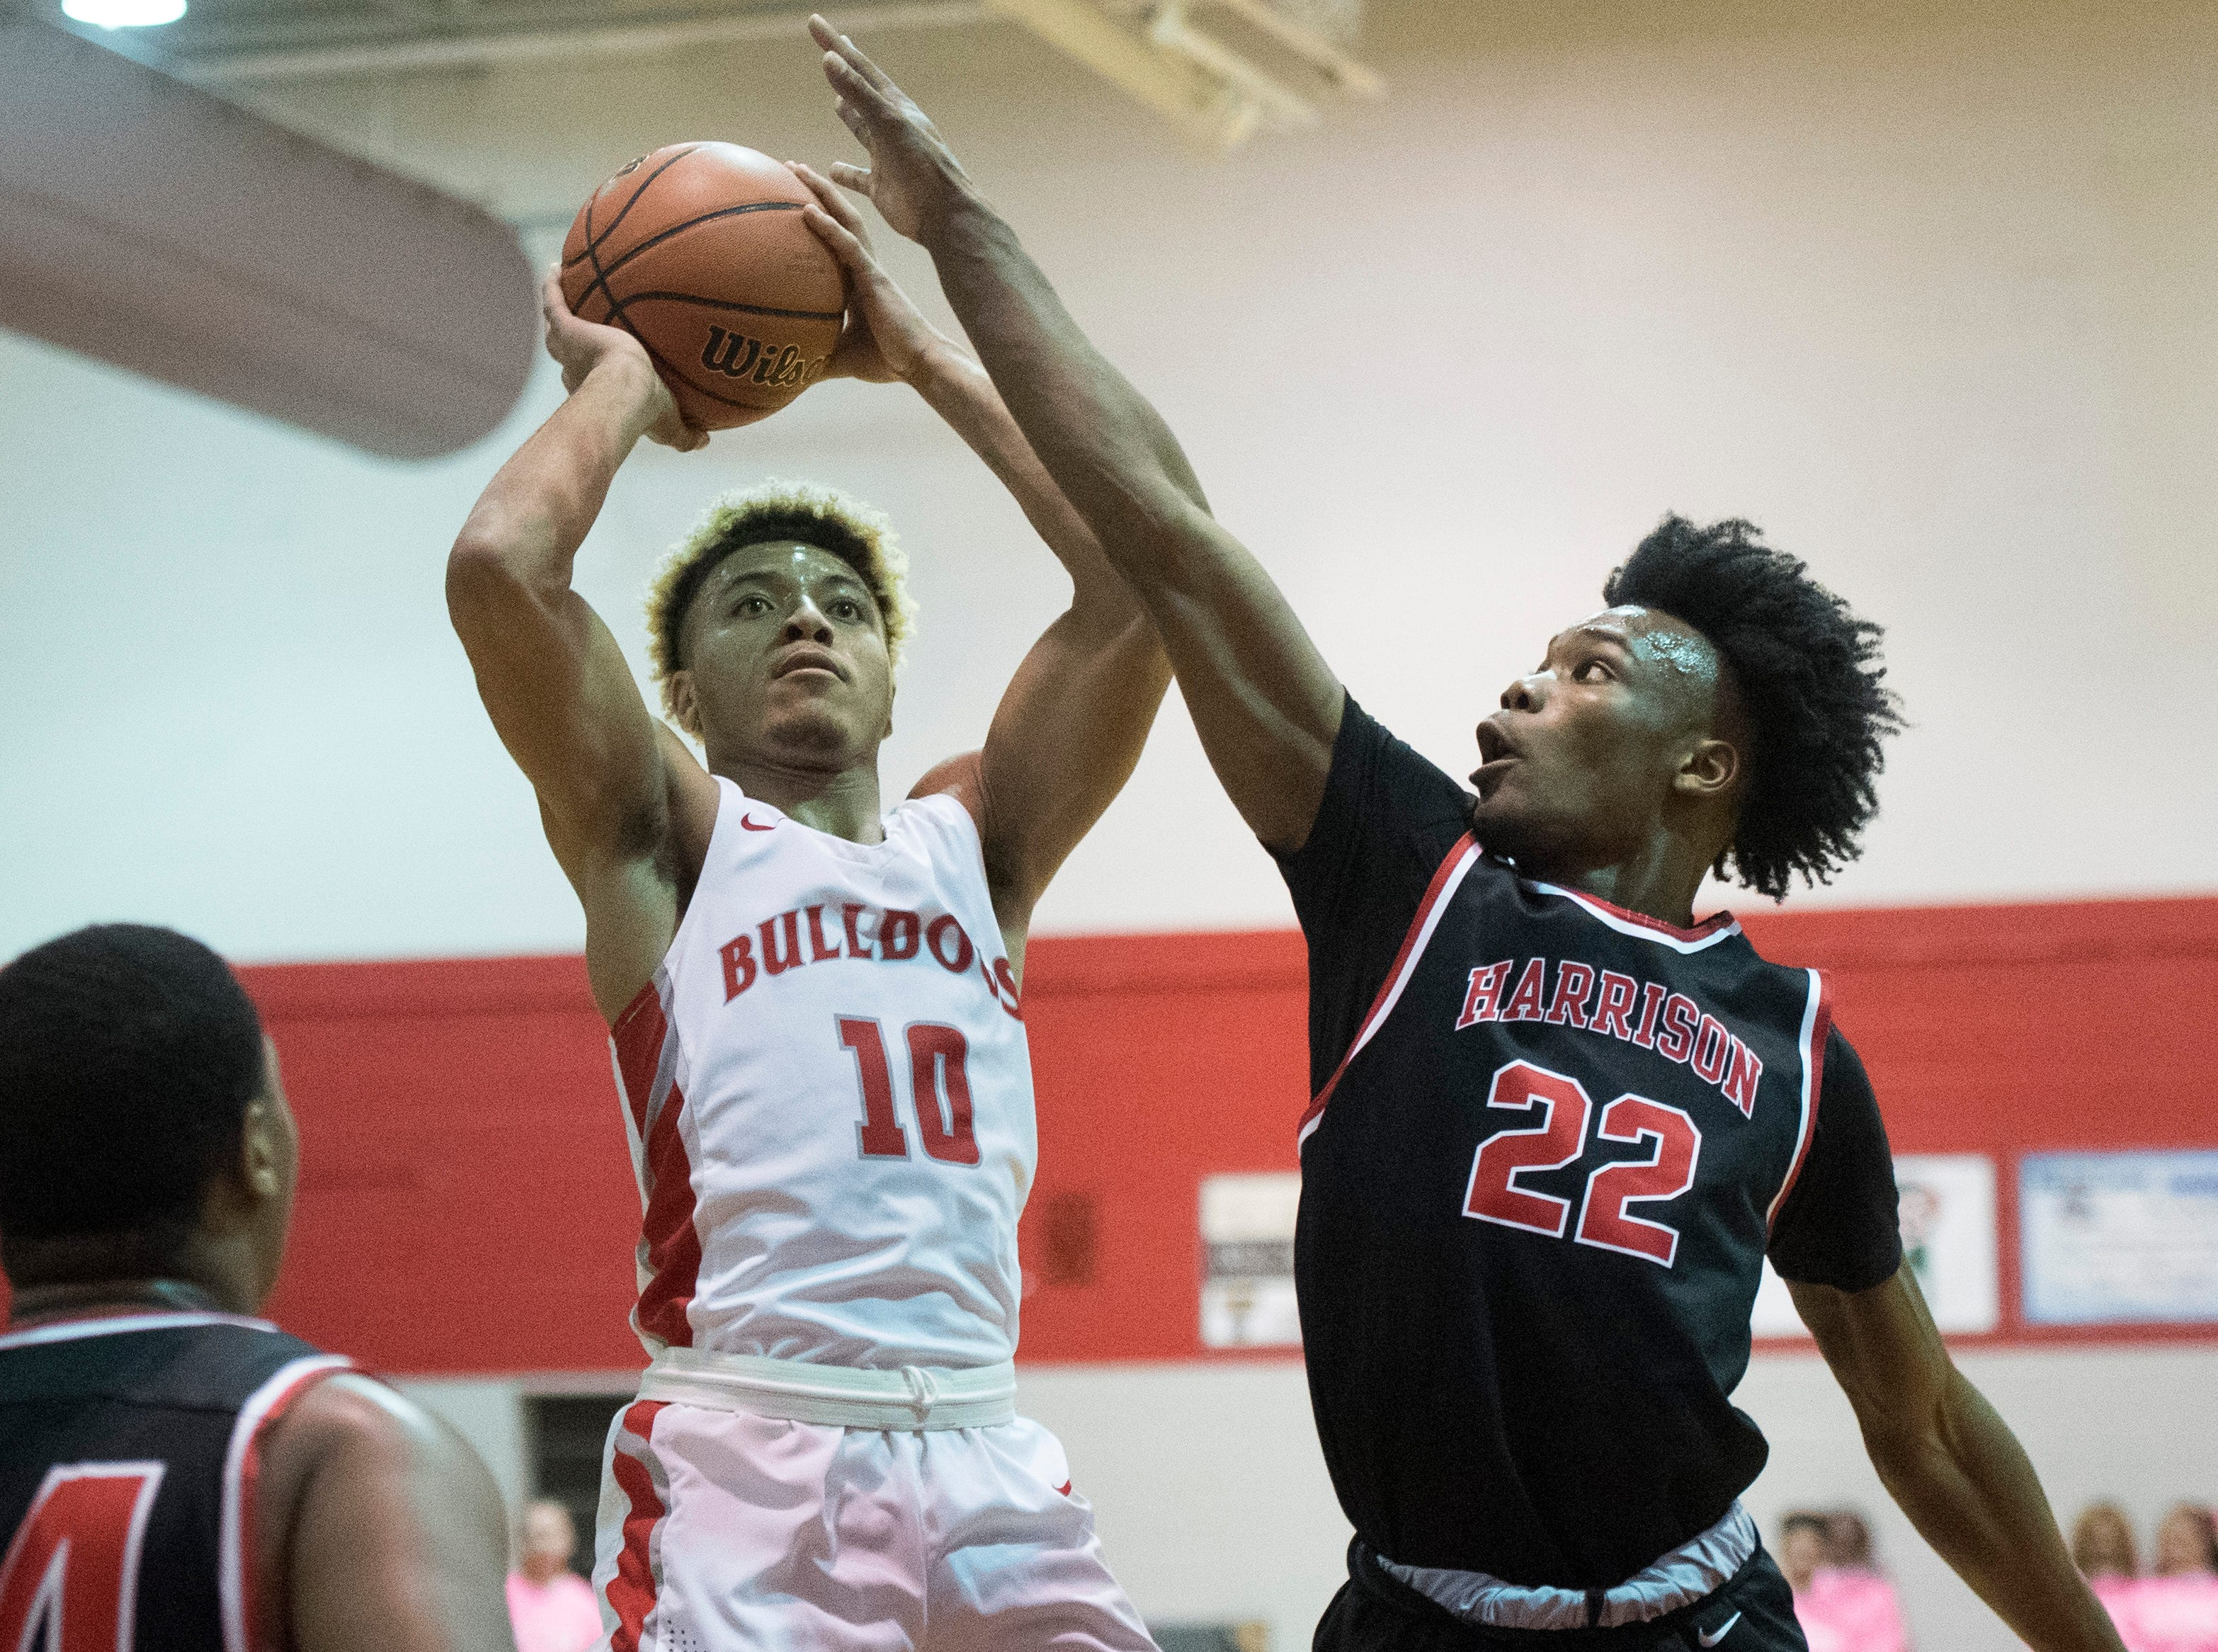 Bosse's Javen Layne (10) takes a shot during the Harrison vs Bosse game at Bosse High School Tuesday, Feb. 12, 2019.